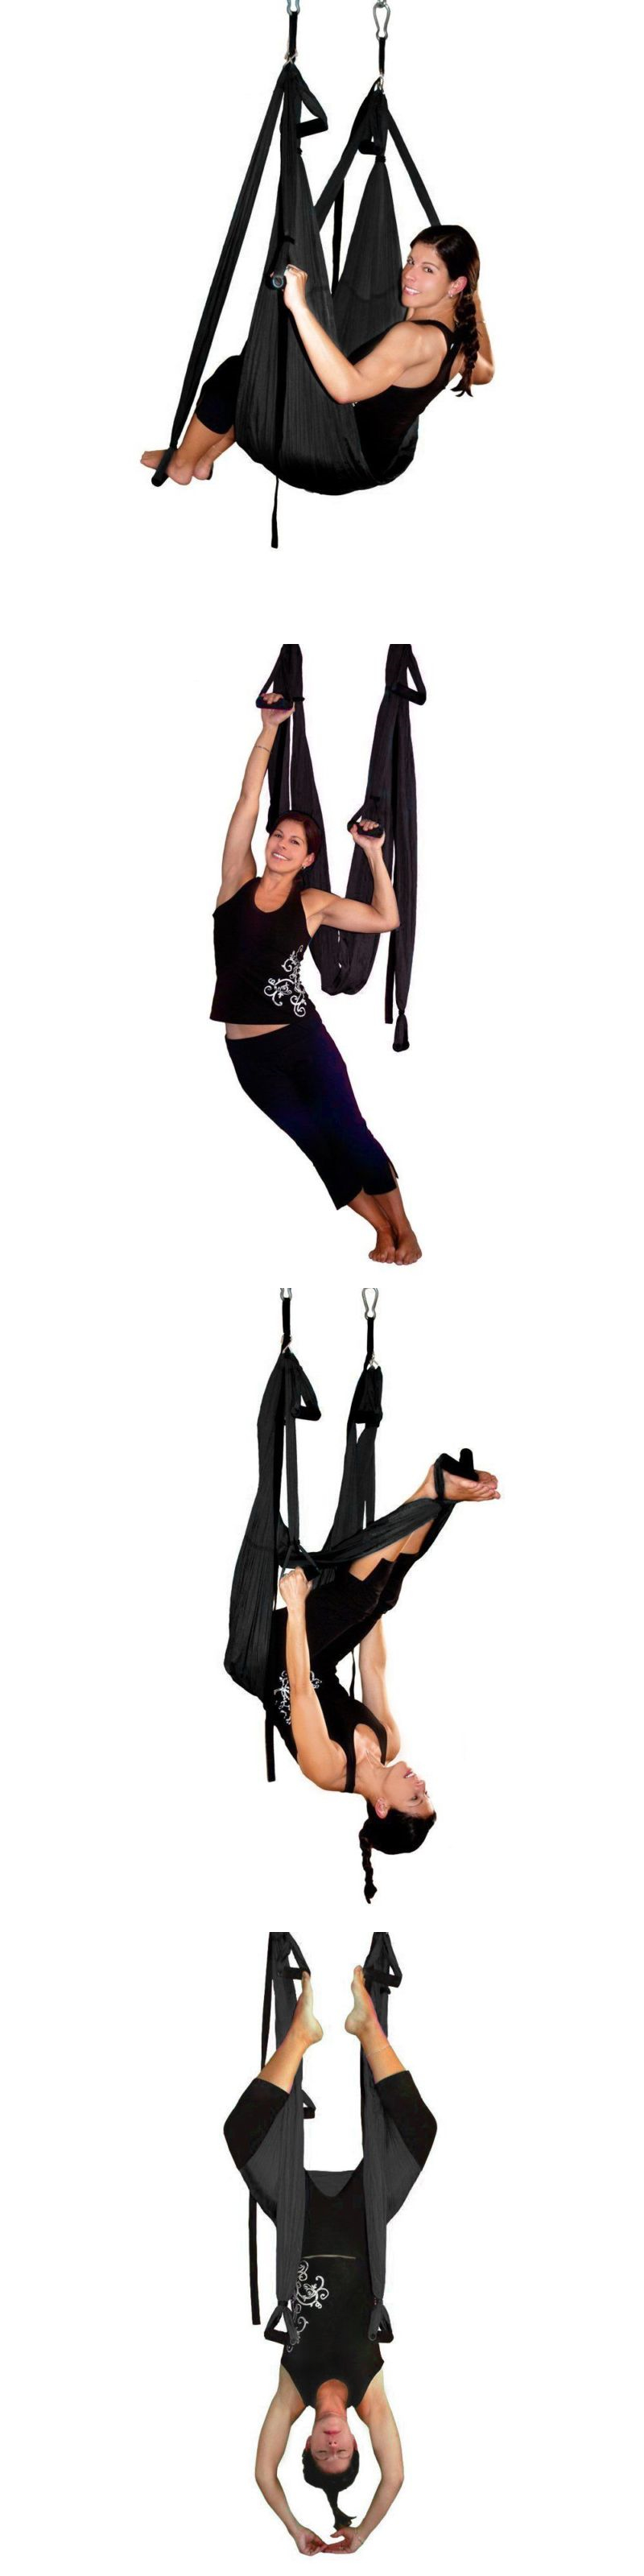 Medium image of yoga props 179809  agptek deluxe aerial yoga hammock yoga inversion sling trapeze for aerial yoga